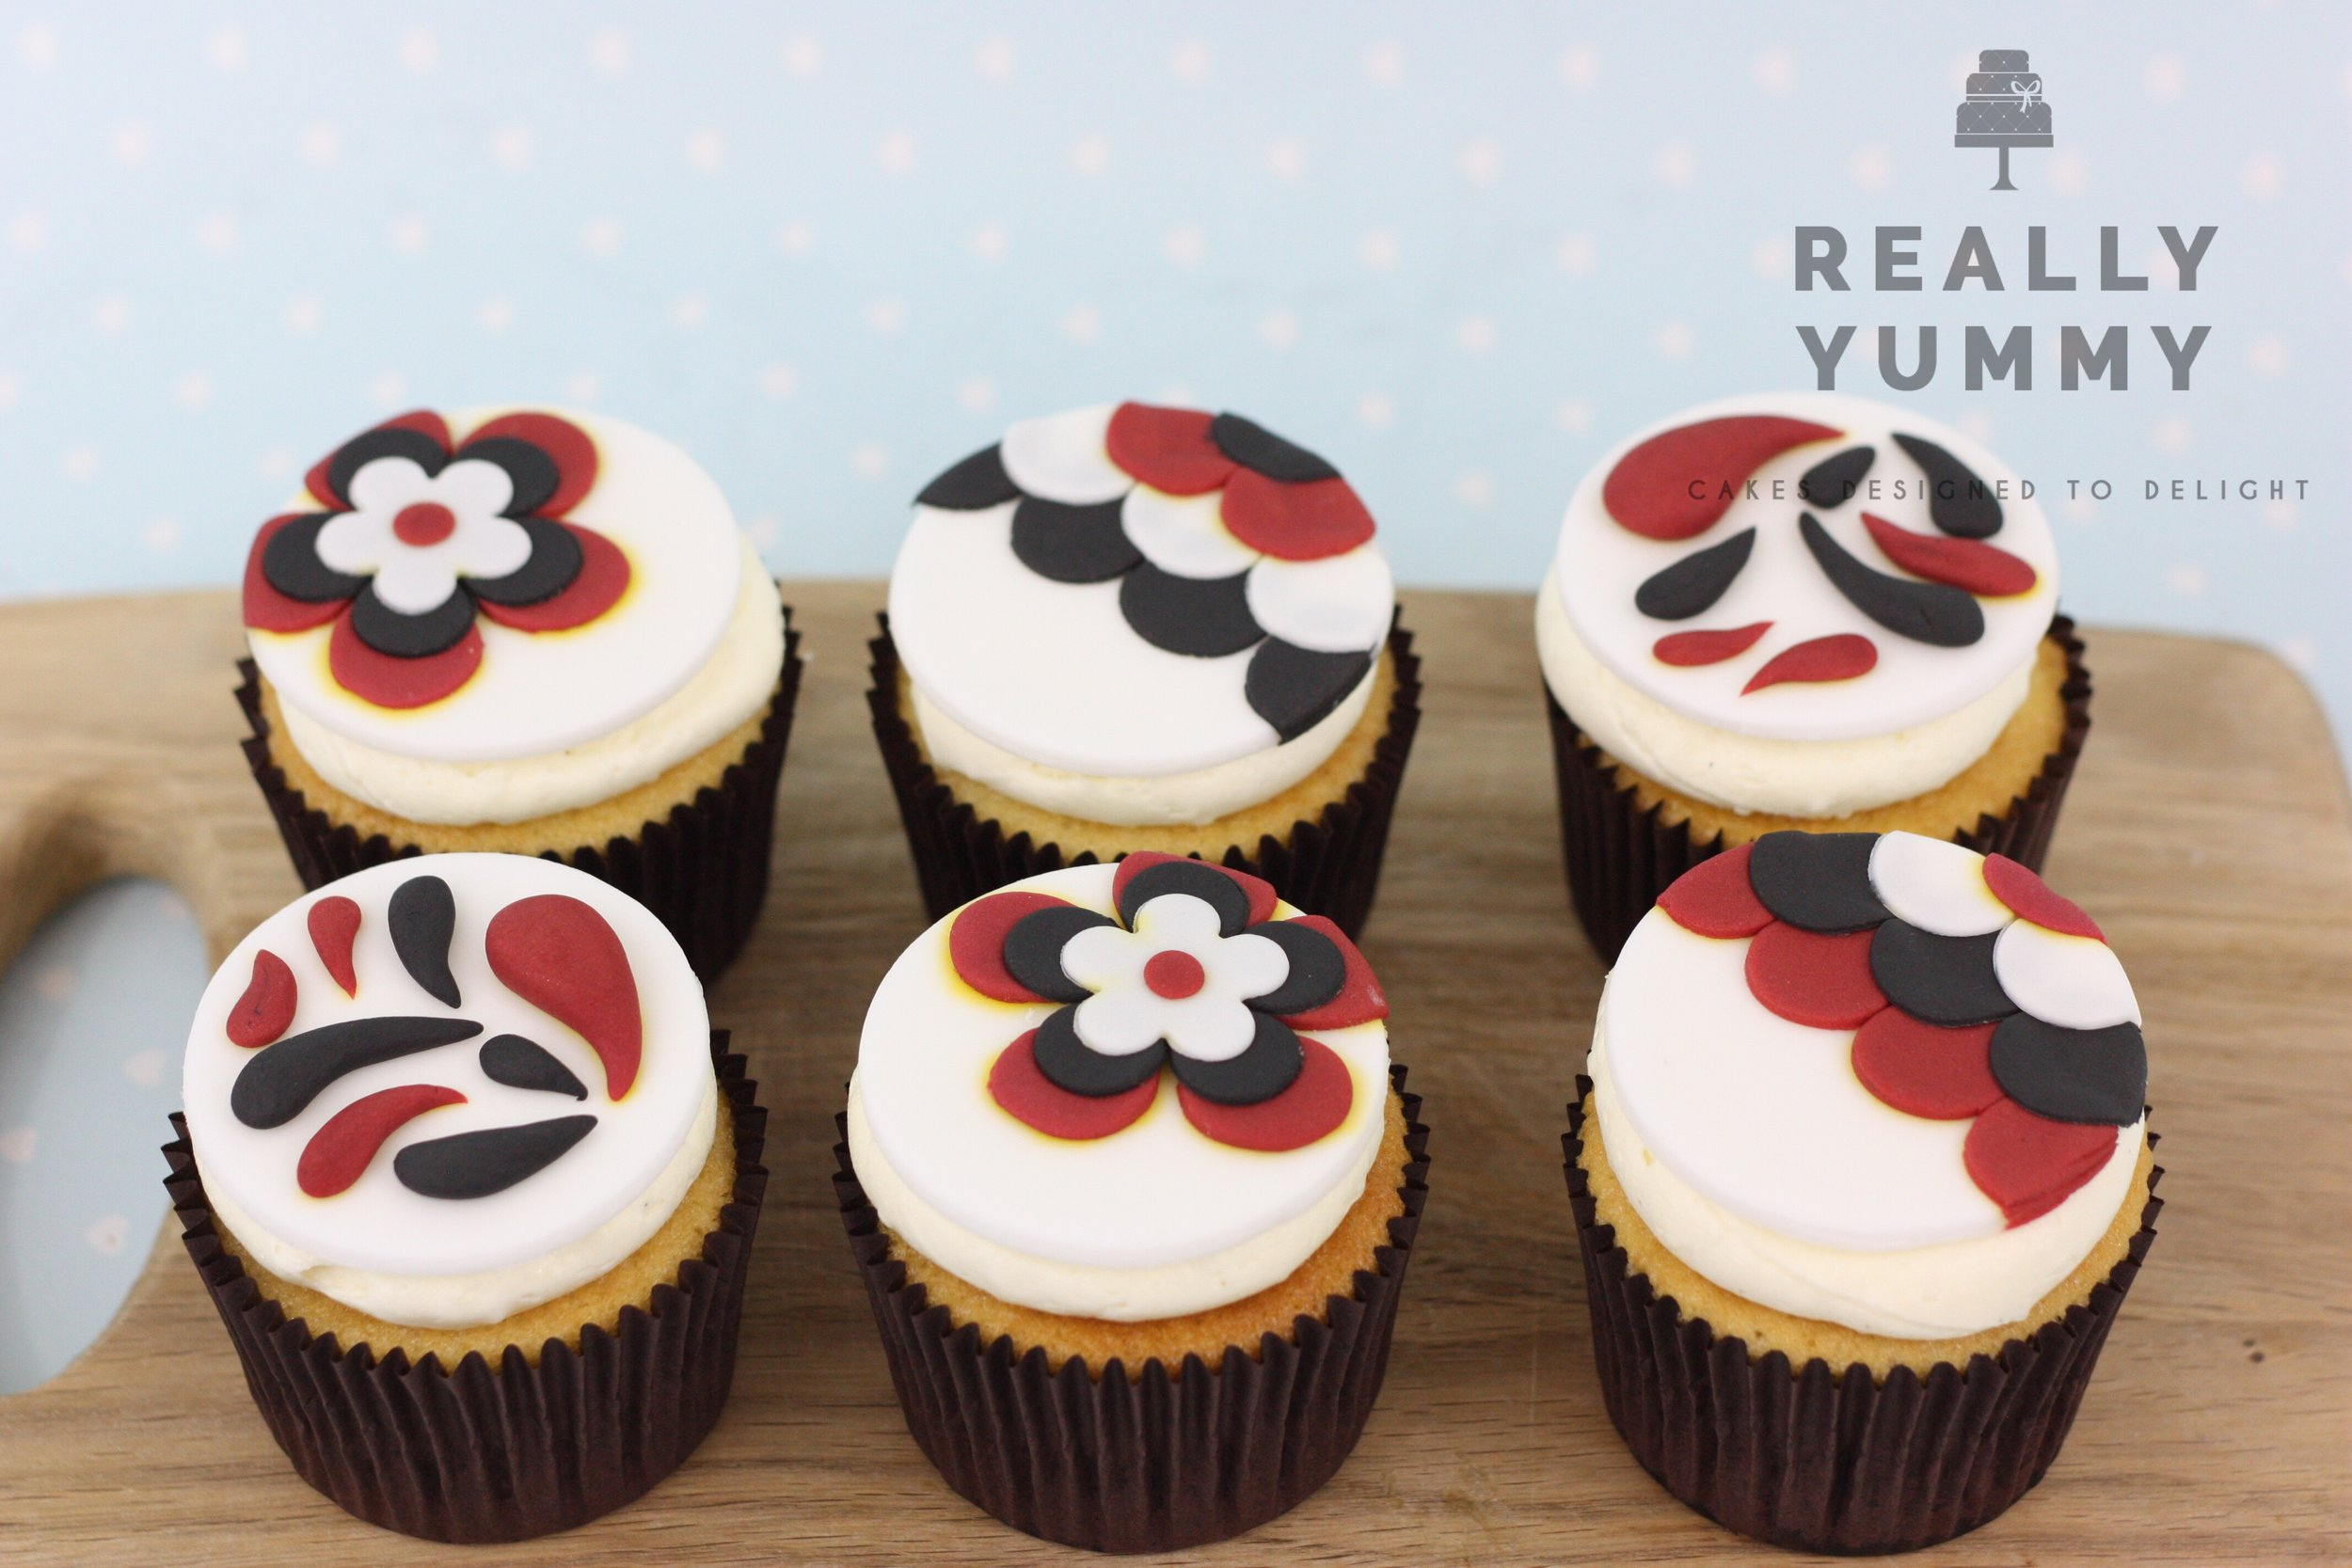 Heather T. - I've been ordering from Liz for a while now and her cakes never fail to please, the service is first class , I would definitely recommend.